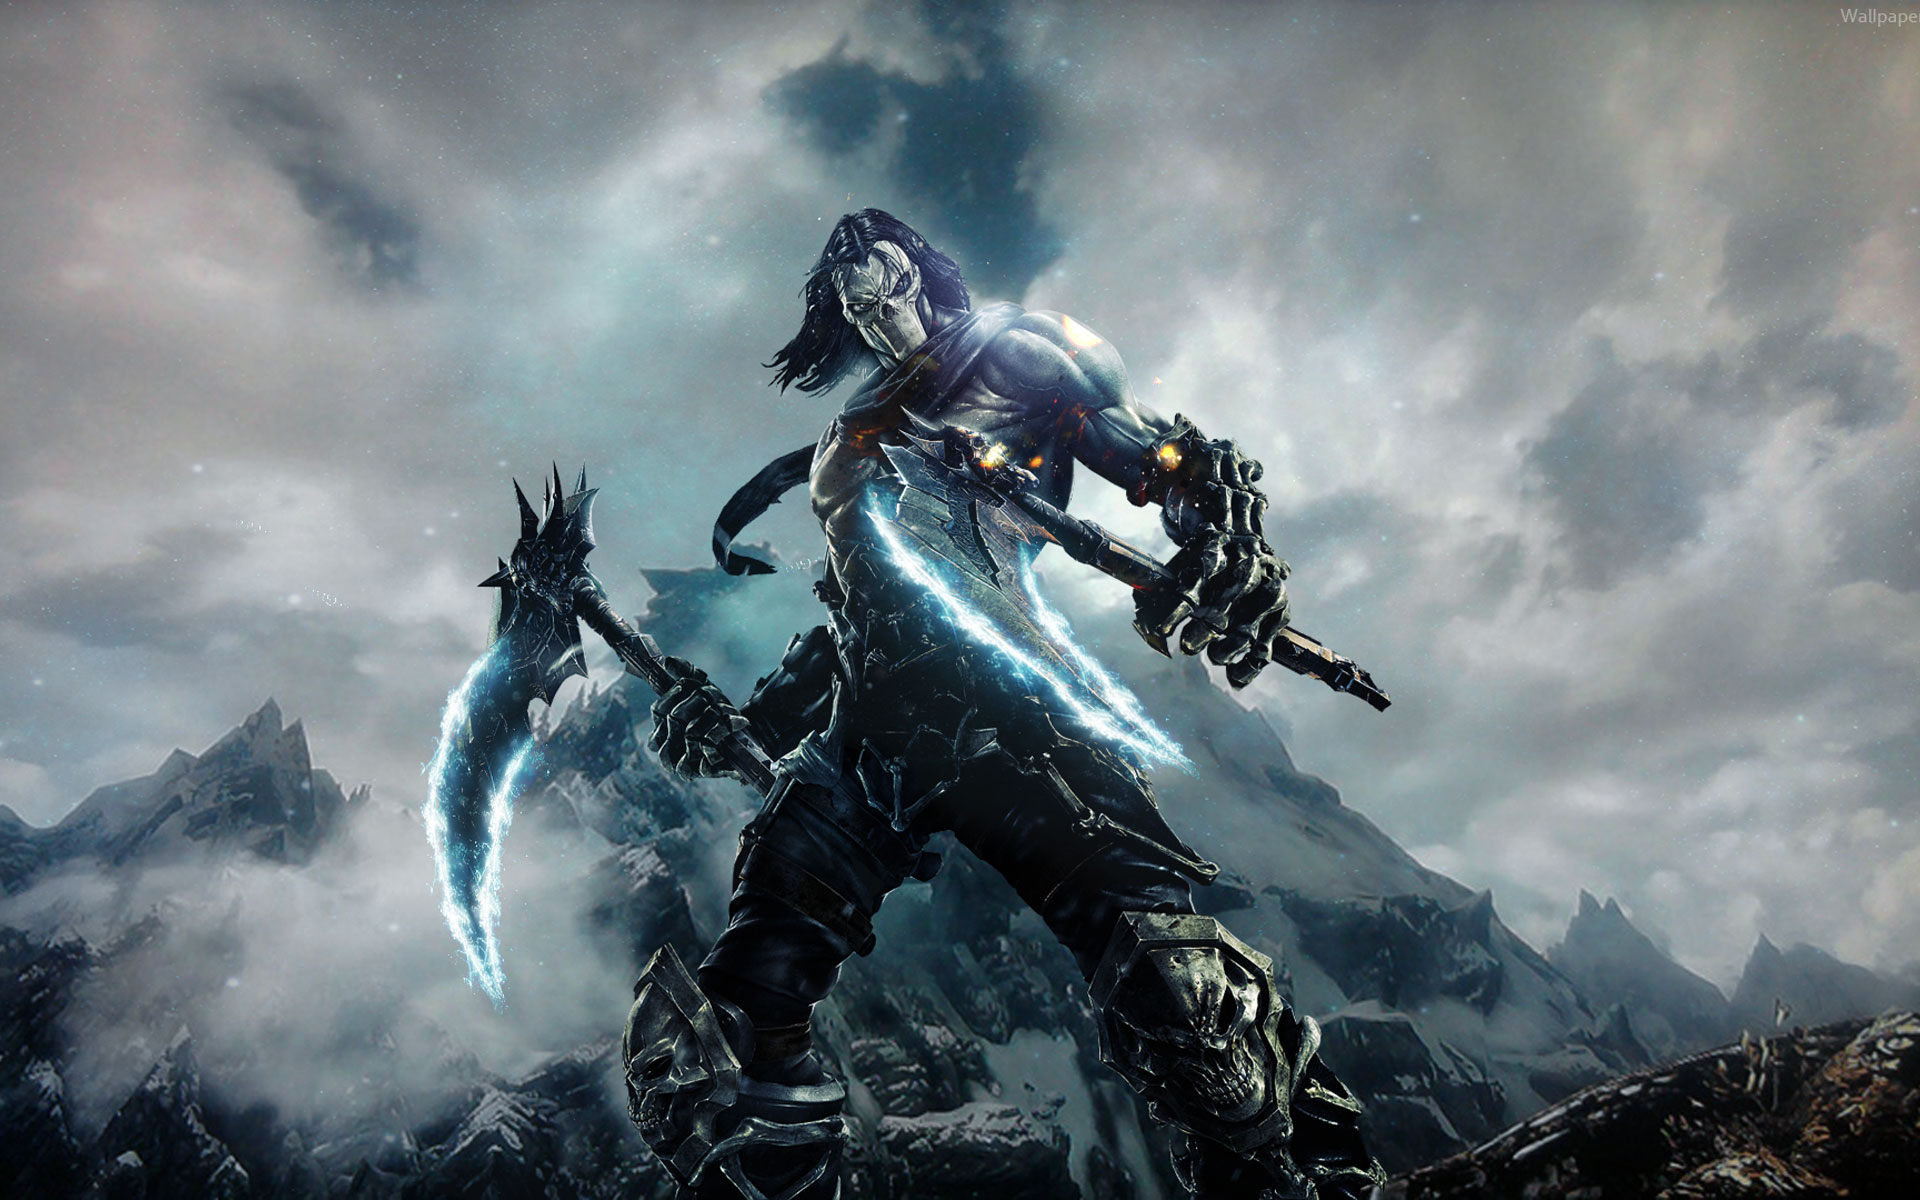 Darksiders 2 Wii U Wallpaper Jongose Ninja 1920x1200